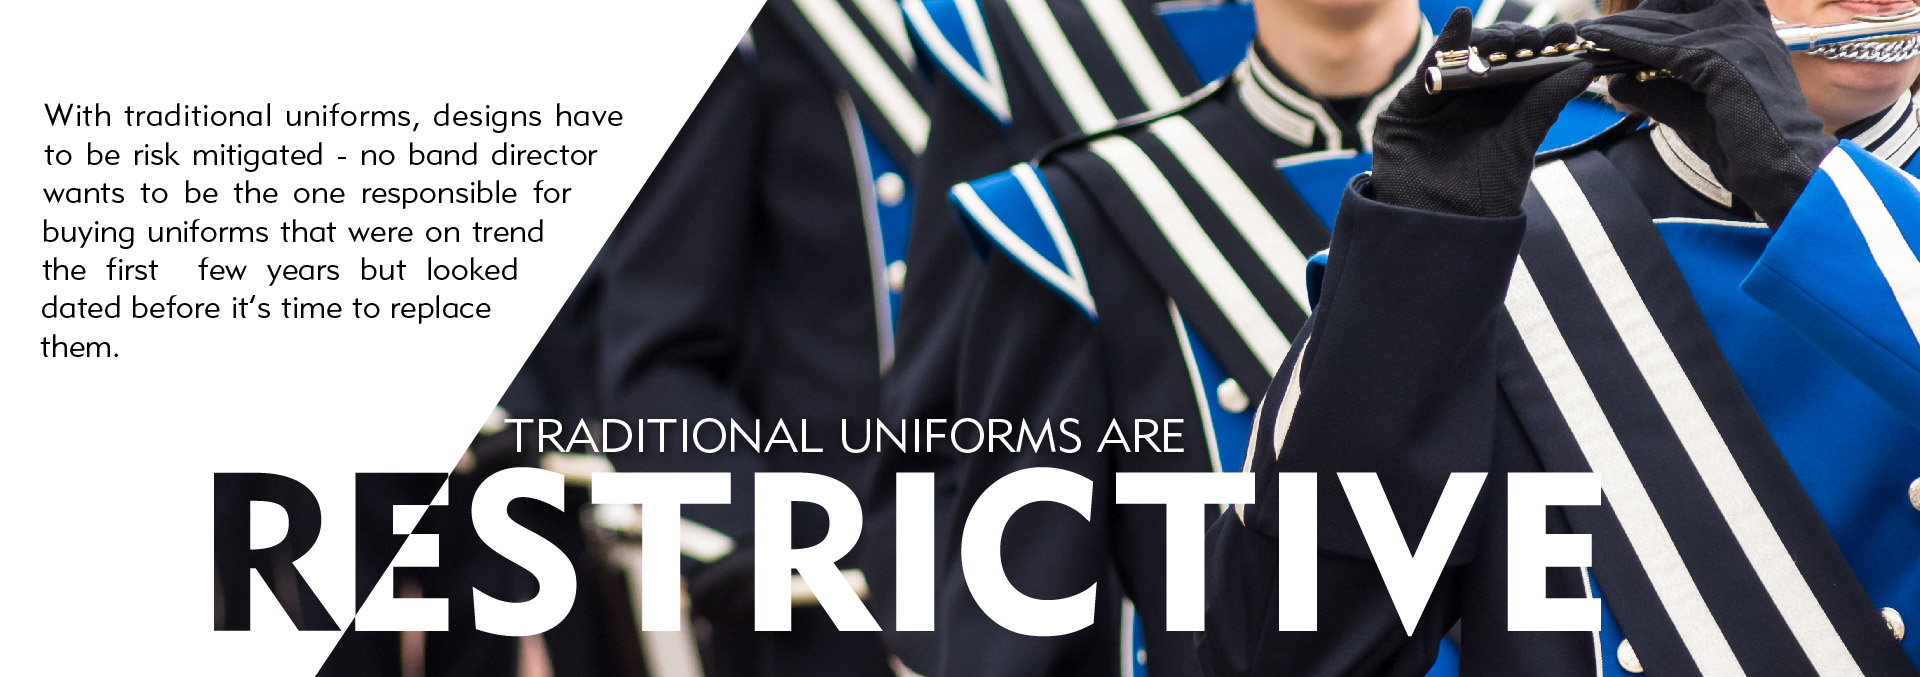 Traditional marching band uniforms are restrictive. Don't compromise on your program design. Designs have to be risk mitigated - no band director wants to be the one responsible for buying uniforms that were on trend the first few years but looked dated before it's time to replace them.